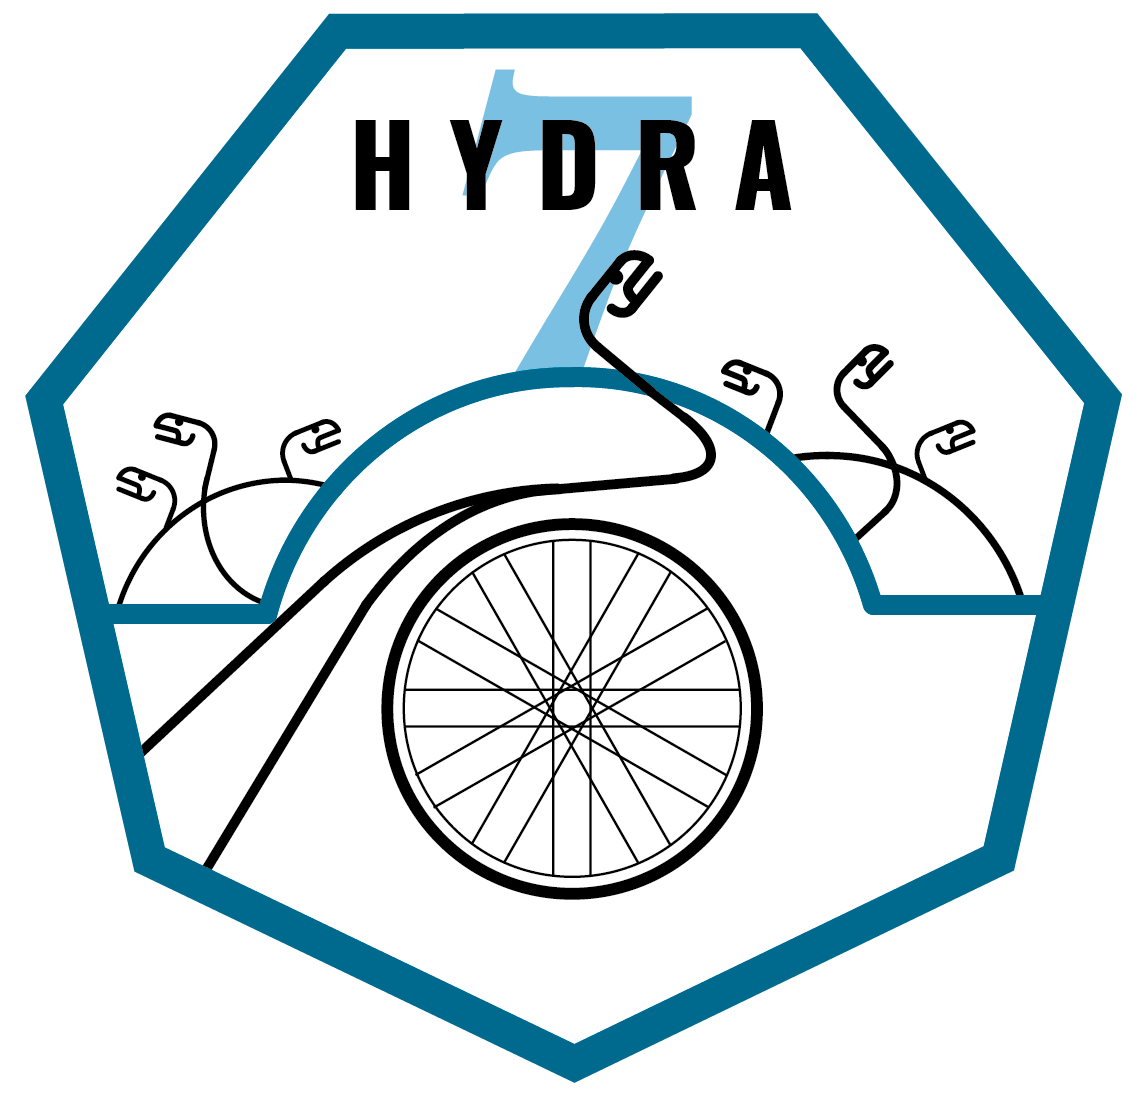 hydra-7-badge